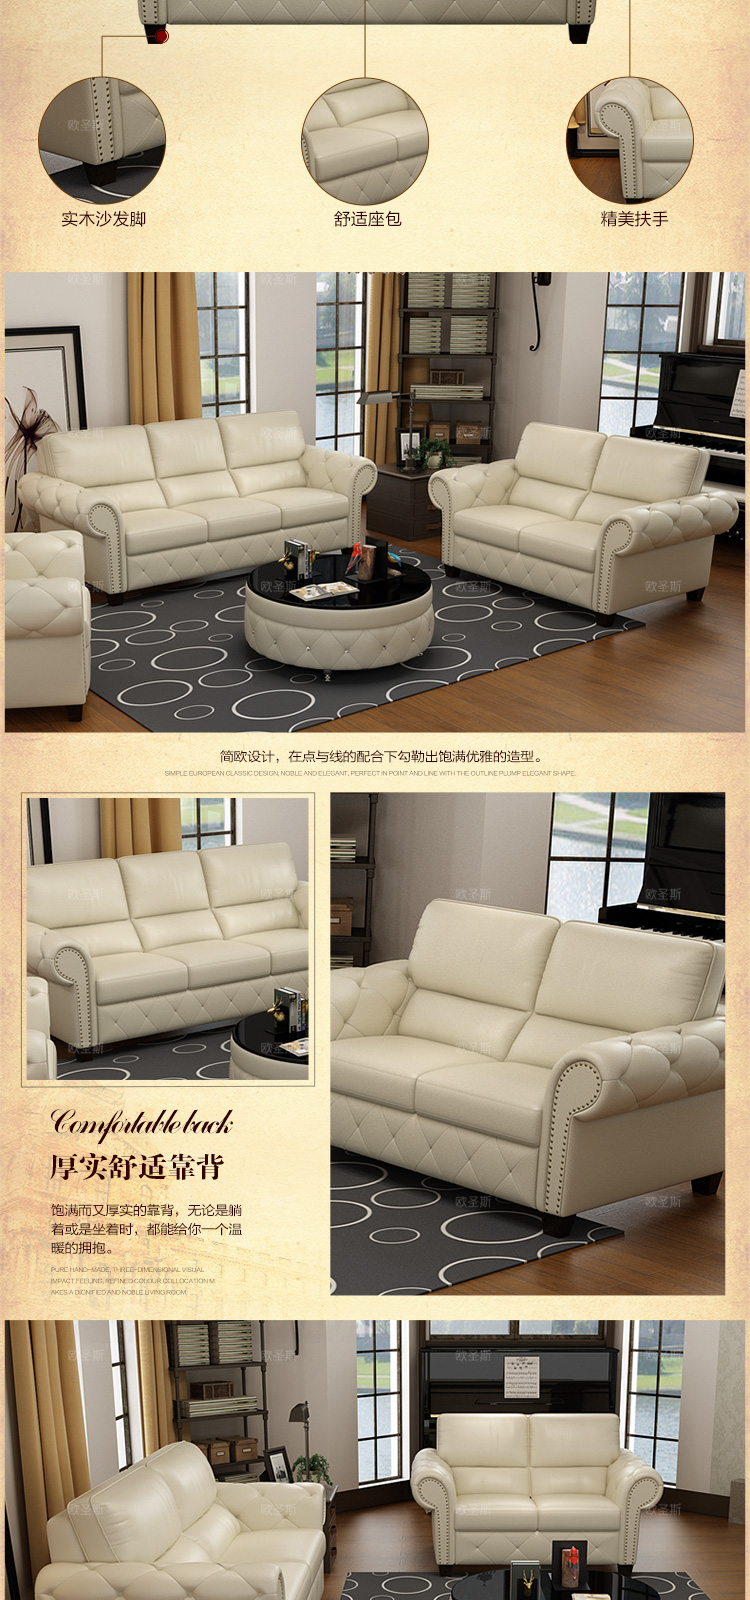 New Style Sofa Set Design Us 1045 5 Off Luxury New Classic European Royal Sofa Set Designs American Style Livingroom 3 Seater Leather Sofa Set Furniture Price List F79a In